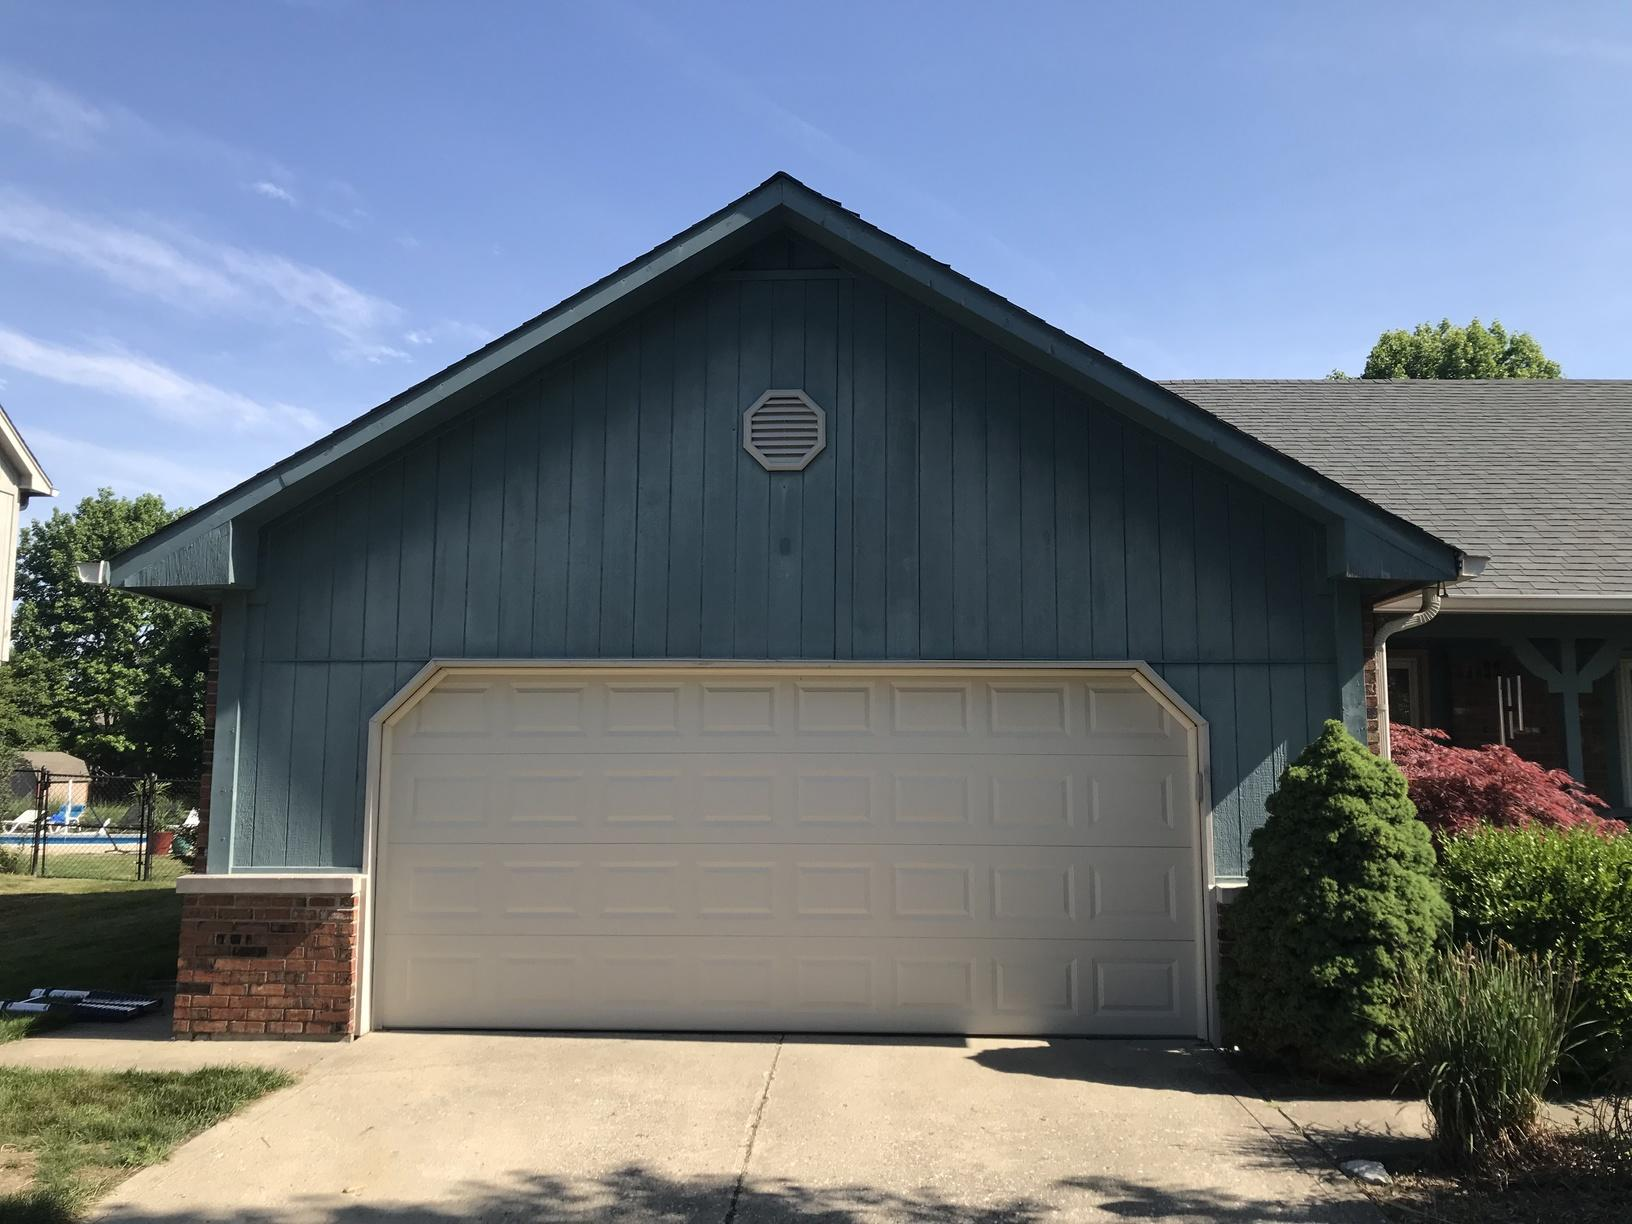 James Hardie Siding Replacement in Indianapolis, IN - Before Photo